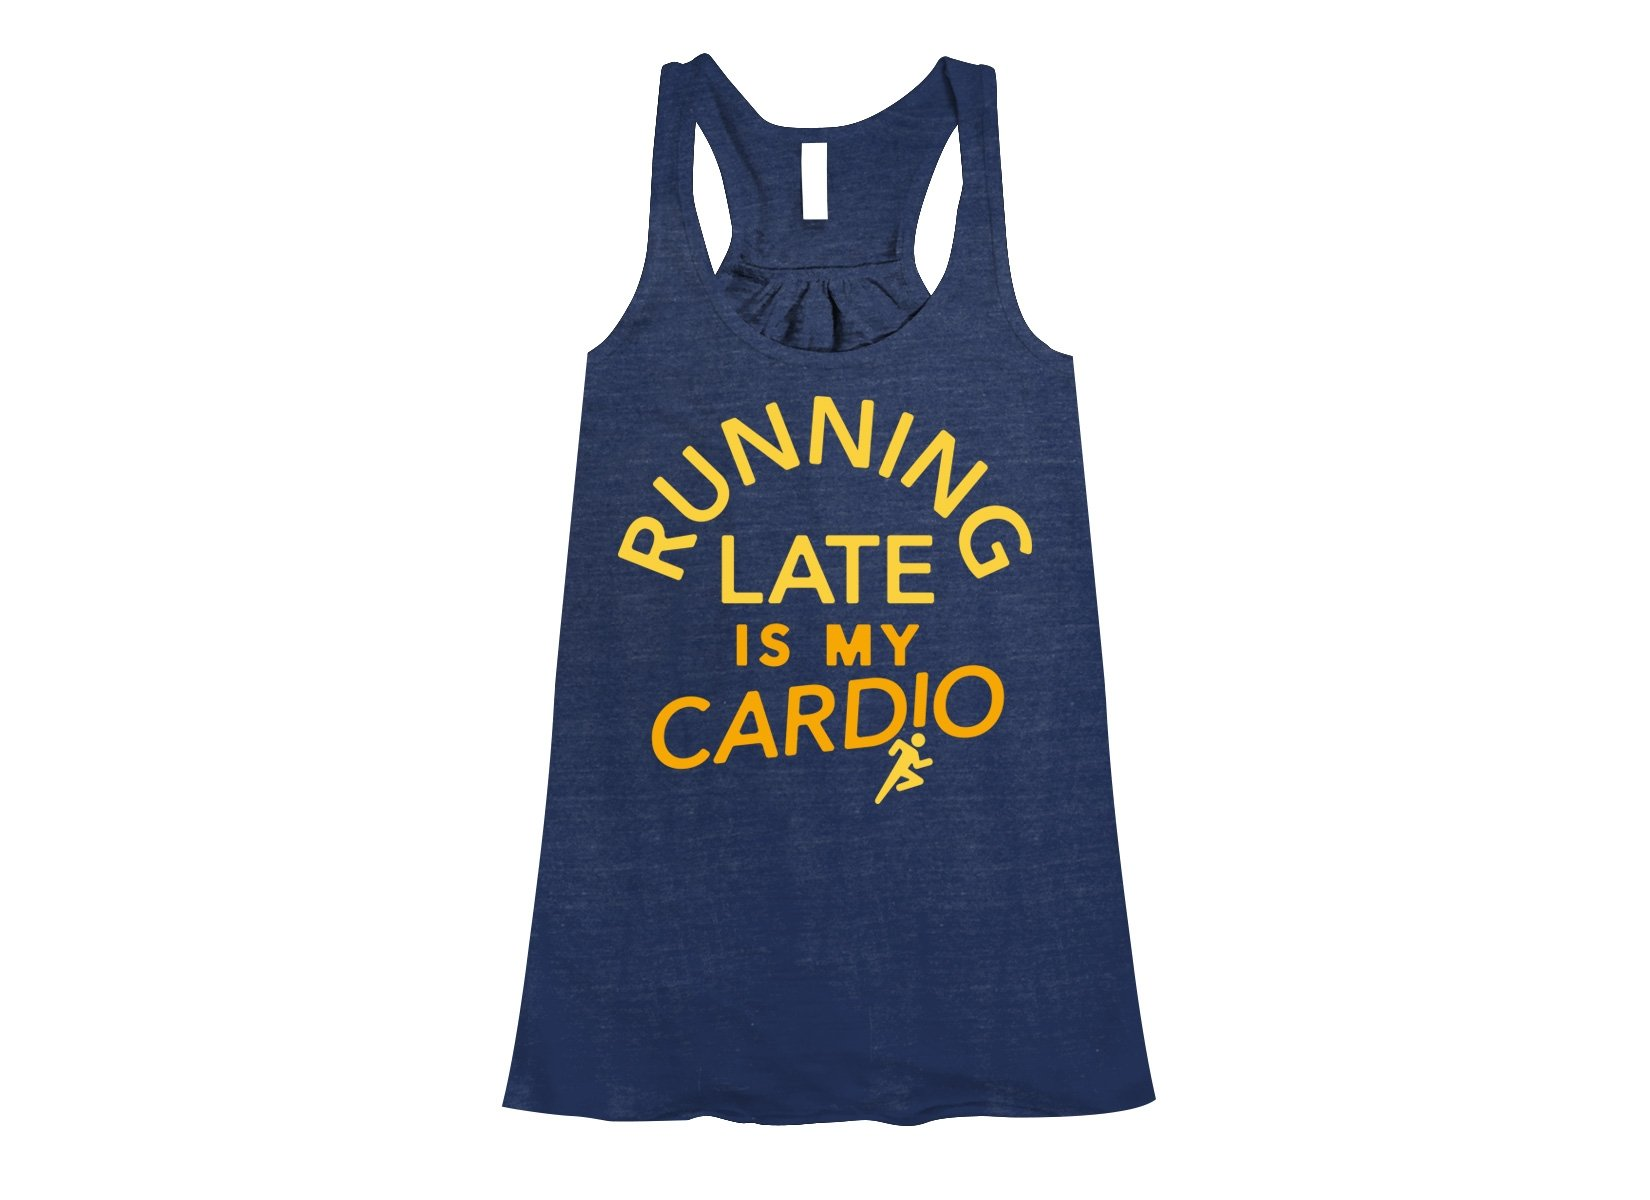 Running Late Is My Cardio on Womens Tanks T-Shirt